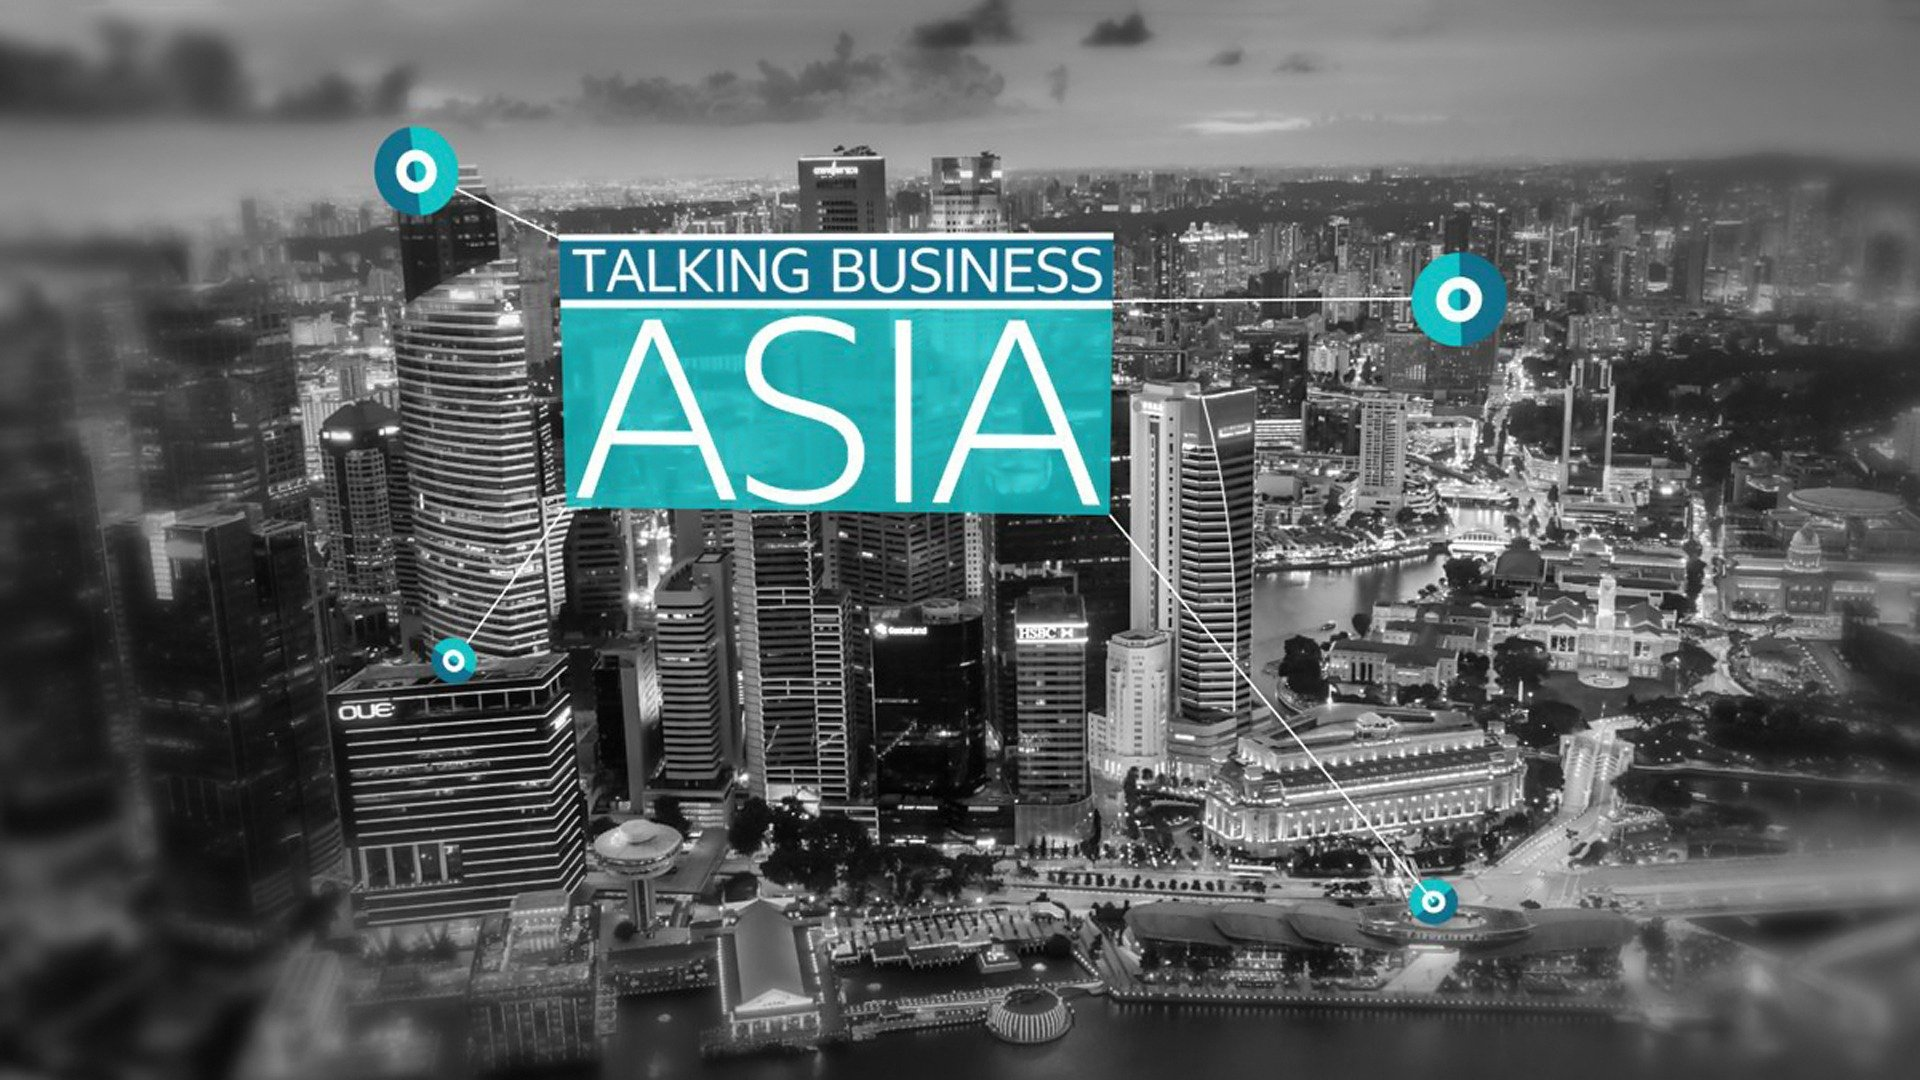 Talking Business Asia